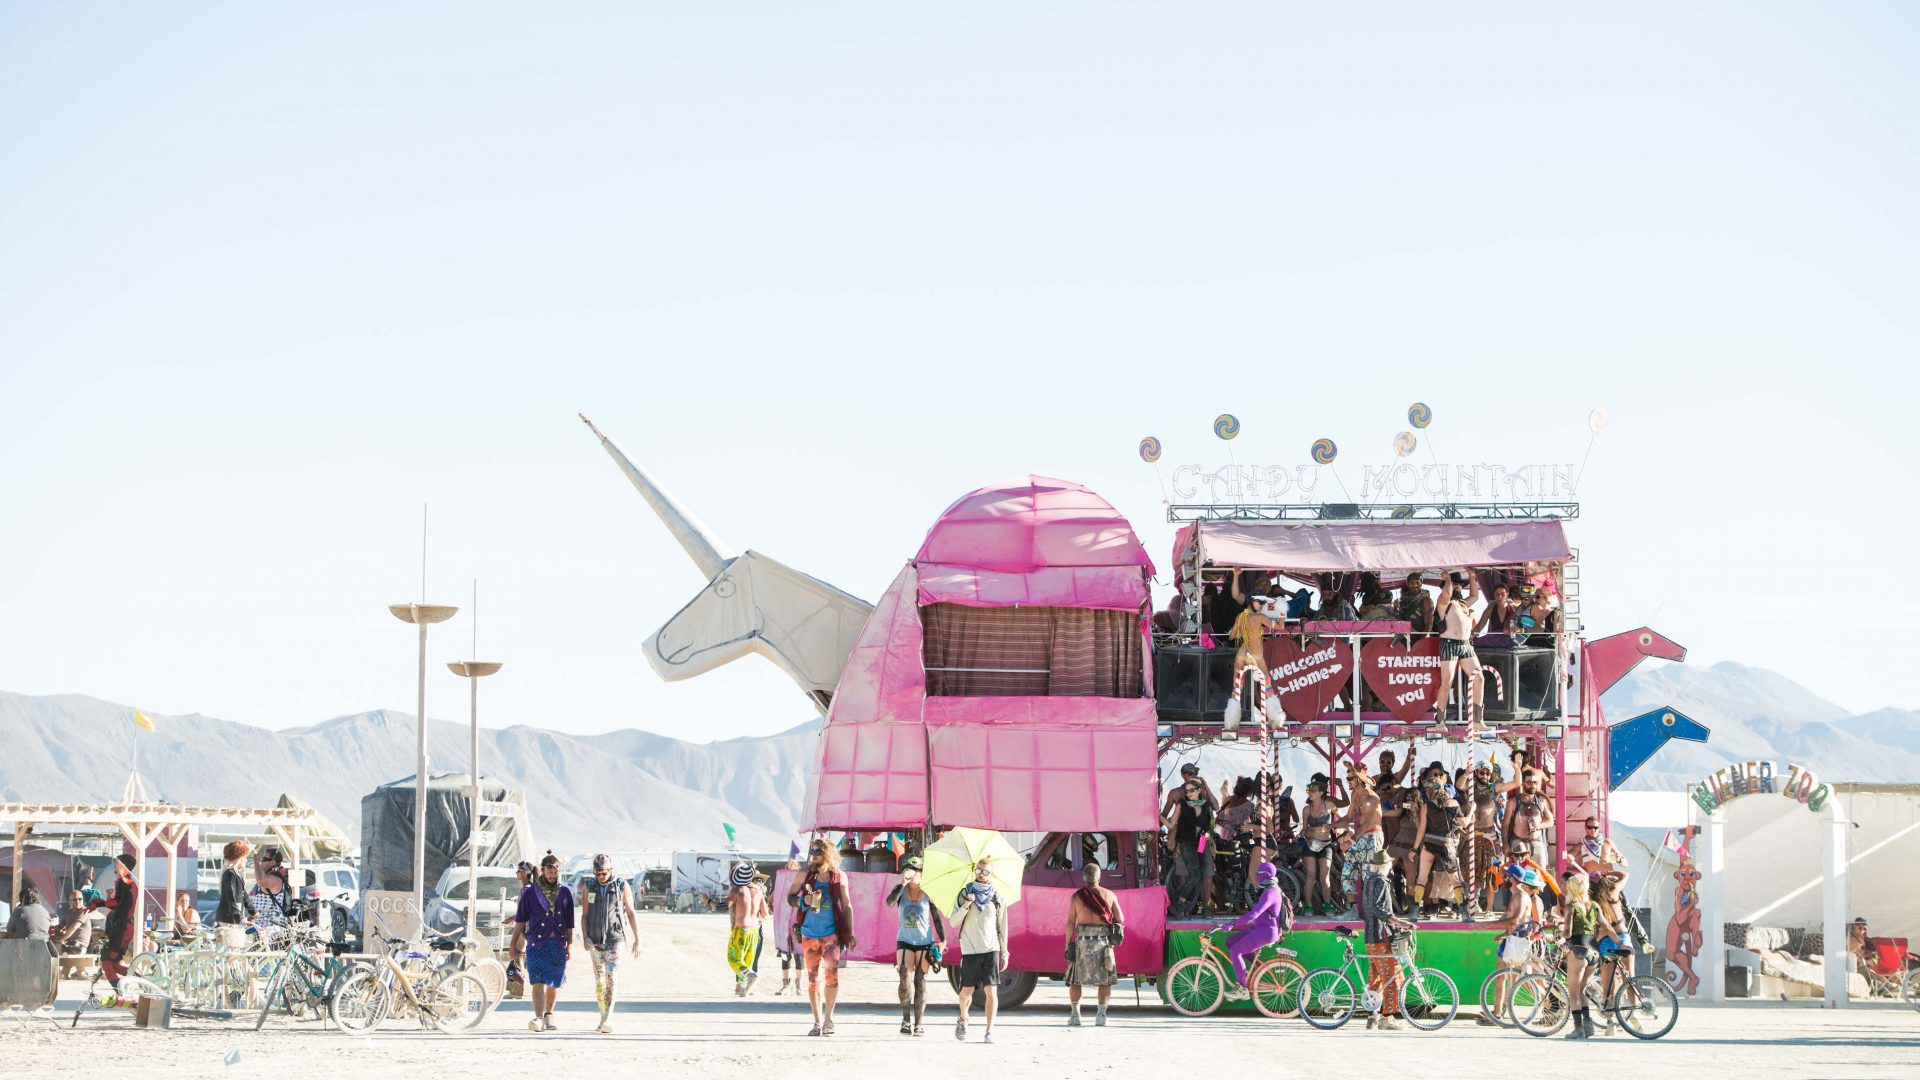 Attendees at the annual Burning Man fill a unicorn inspired art car.